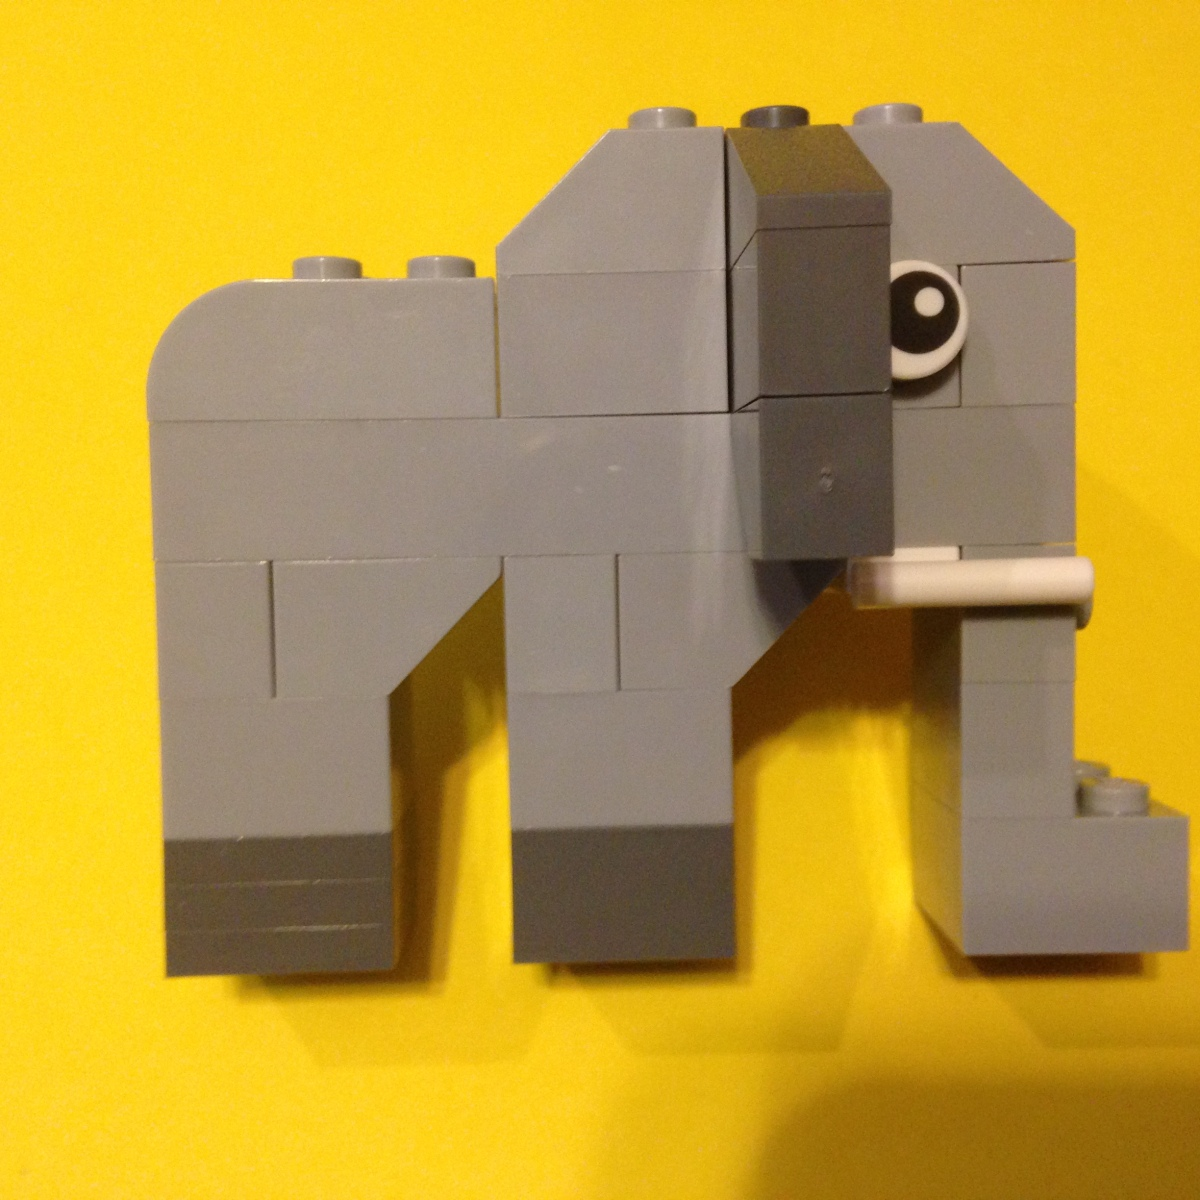 Lego Elephant Classic Creator Box For Parentsteachers Scout